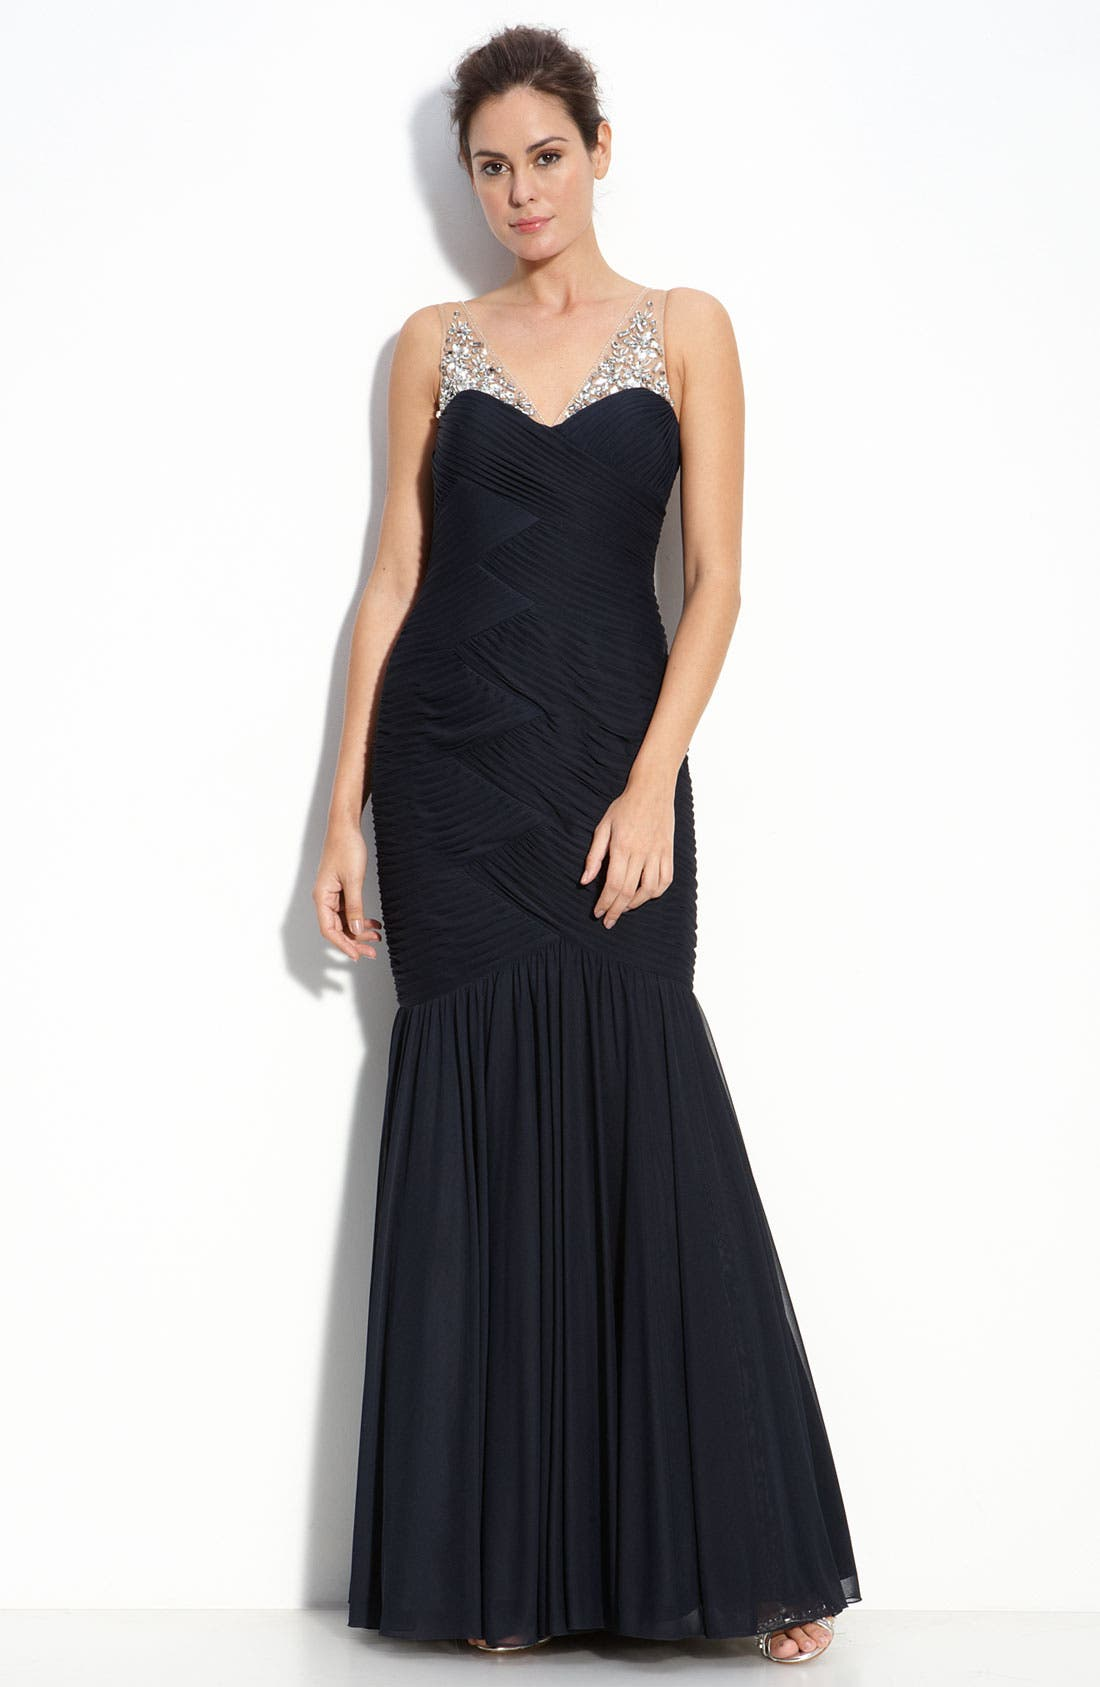 Alternate Image 1 Selected - Adrianna Papell Illusion Bodice Chiffon Mermaid Gown